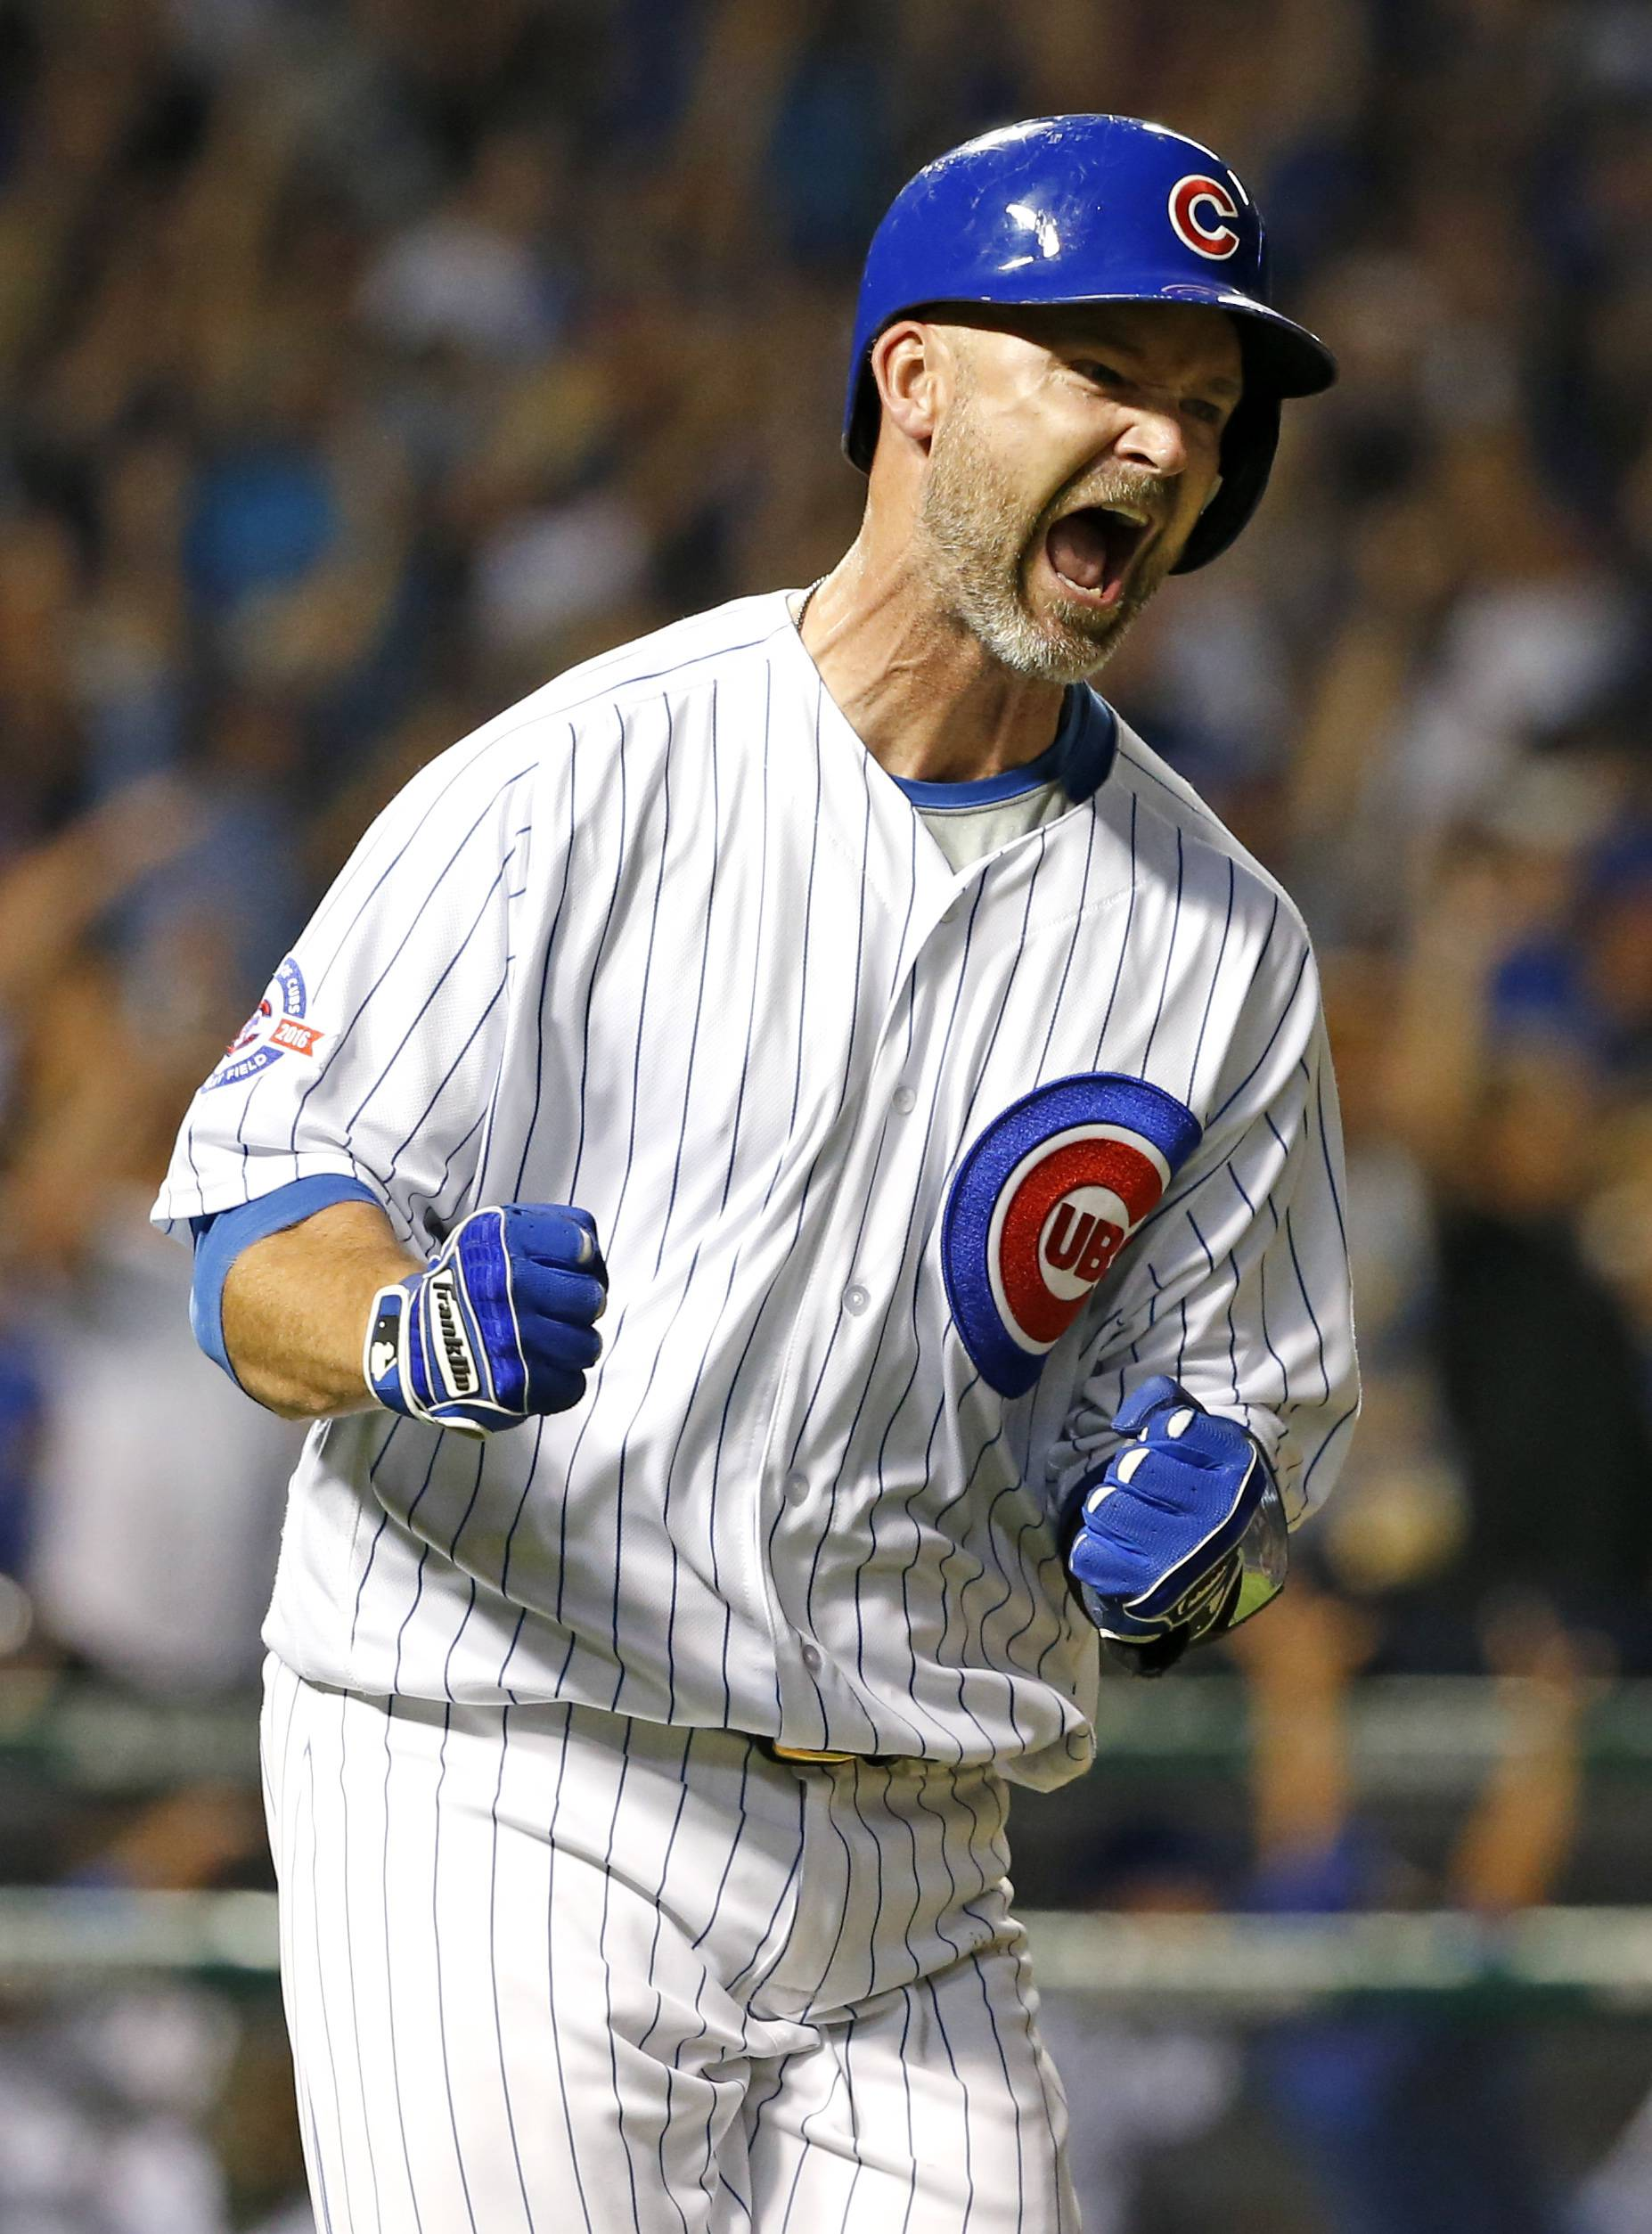 Chicago Cubs' David Ross reacts as he rounds the bases after hitting a solo home run during the fifth inning of a baseball game against the St. Louis Cardinals Sunday, Sept. 25, 2016, in Chicago. (AP Photo/Nam Y. Huh)